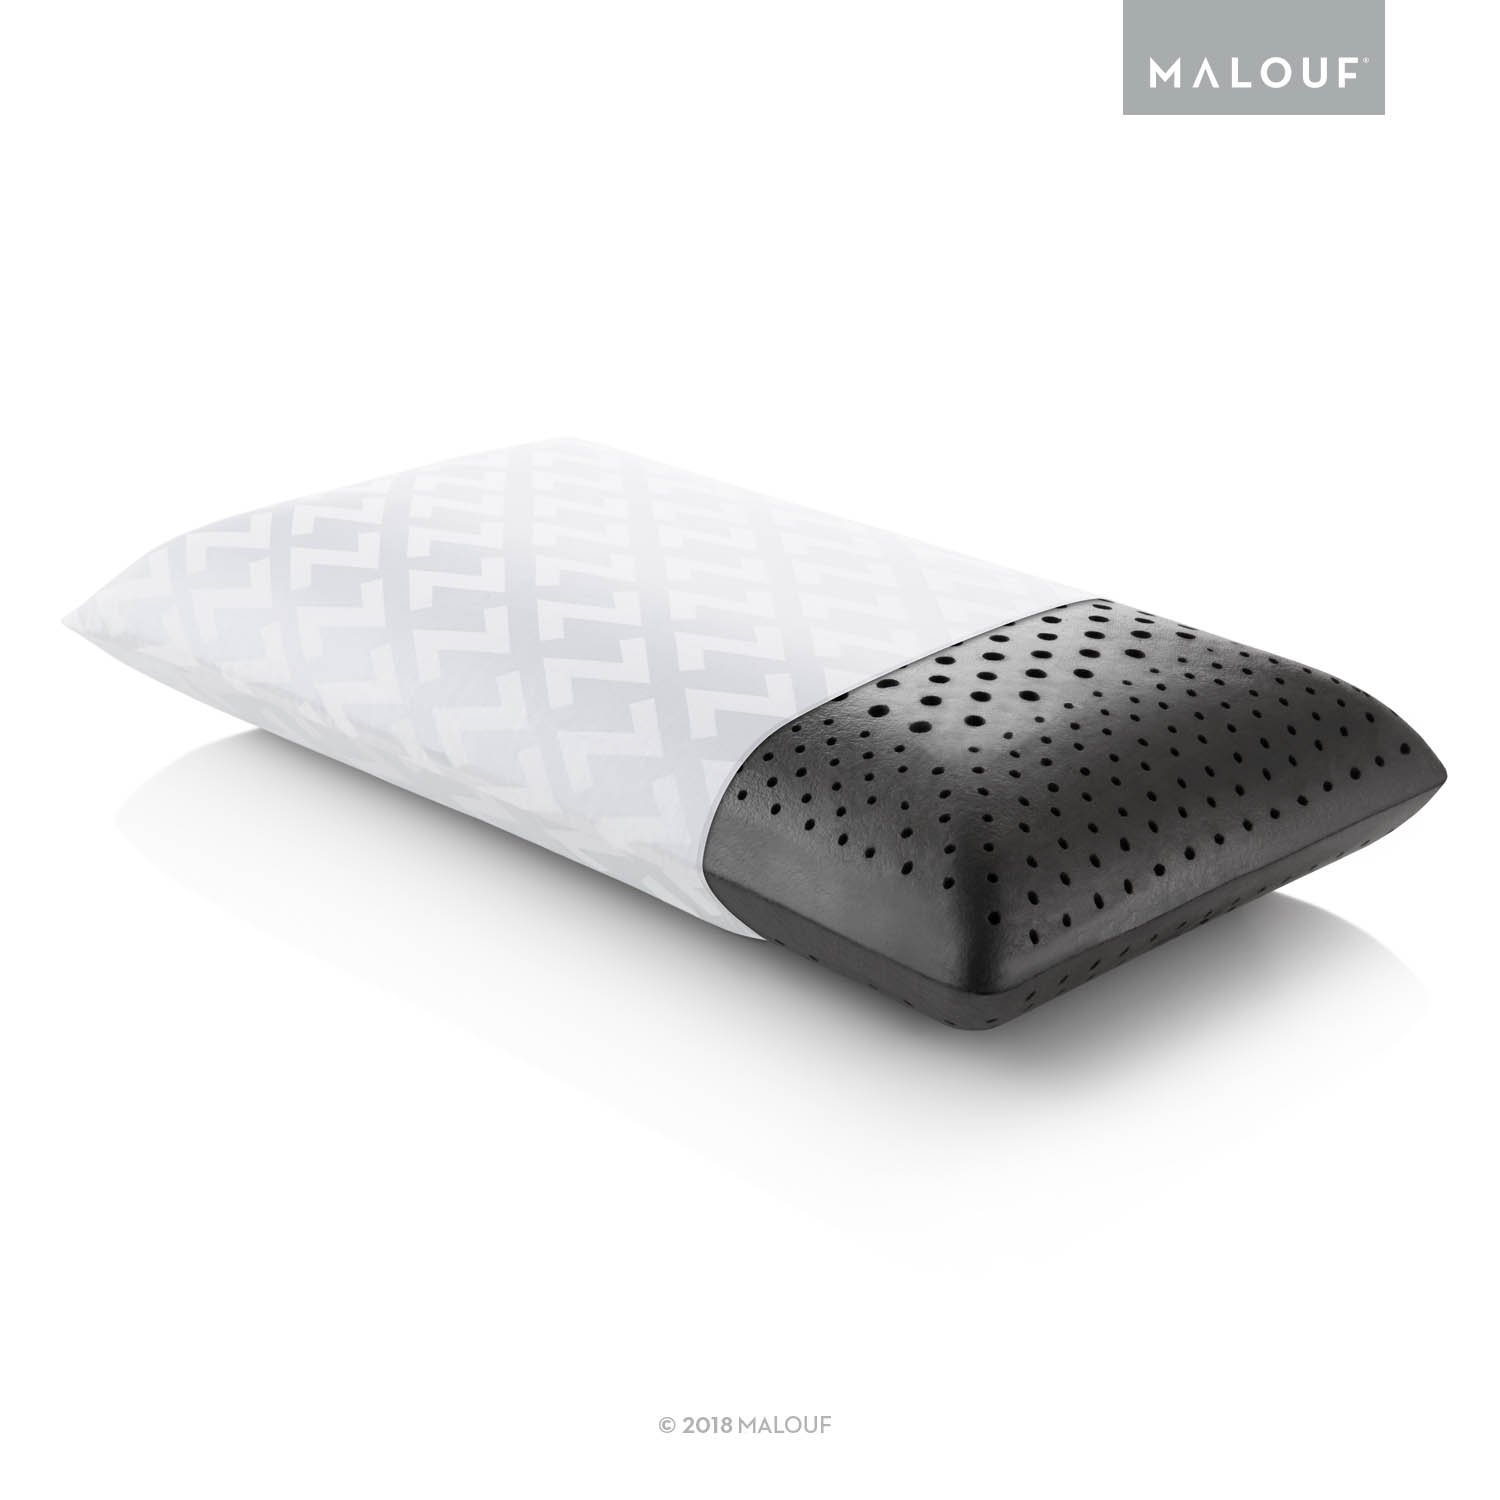 Z Zoned ACTIVEDOUGH Pillow - Infused with Bamboo Charcoal - Feels Like Blend of Latex and Memory Foam - Mid Loft - Queen